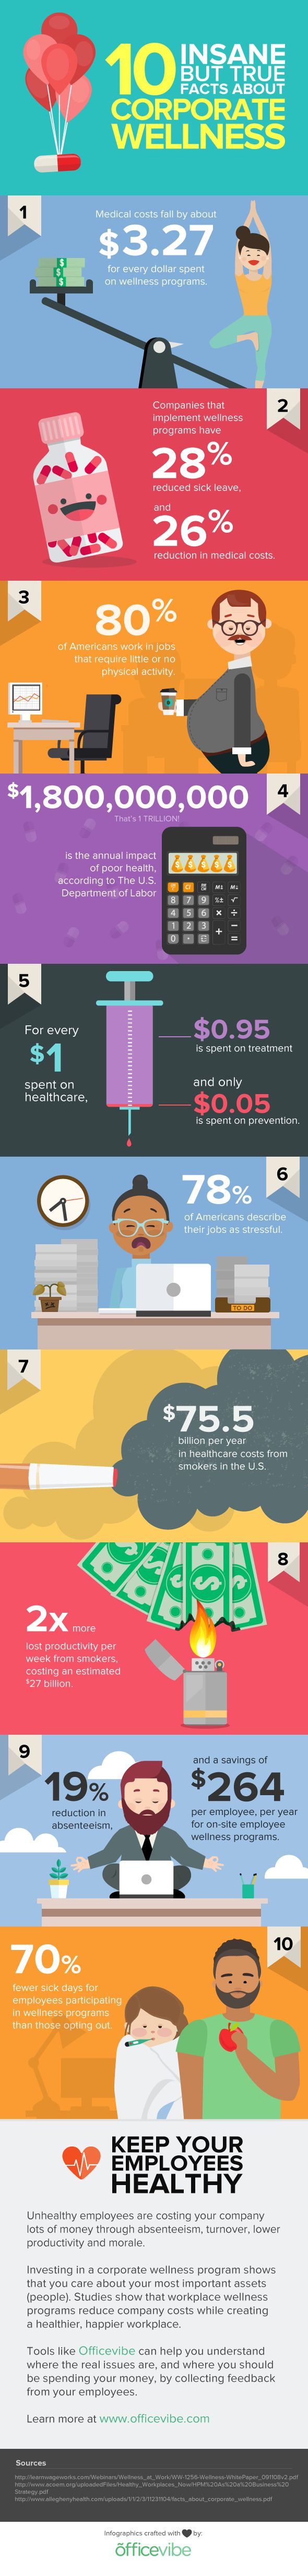 10 Insane (But True) Facts About Corporate Wellness (INFOGRAPHIC)